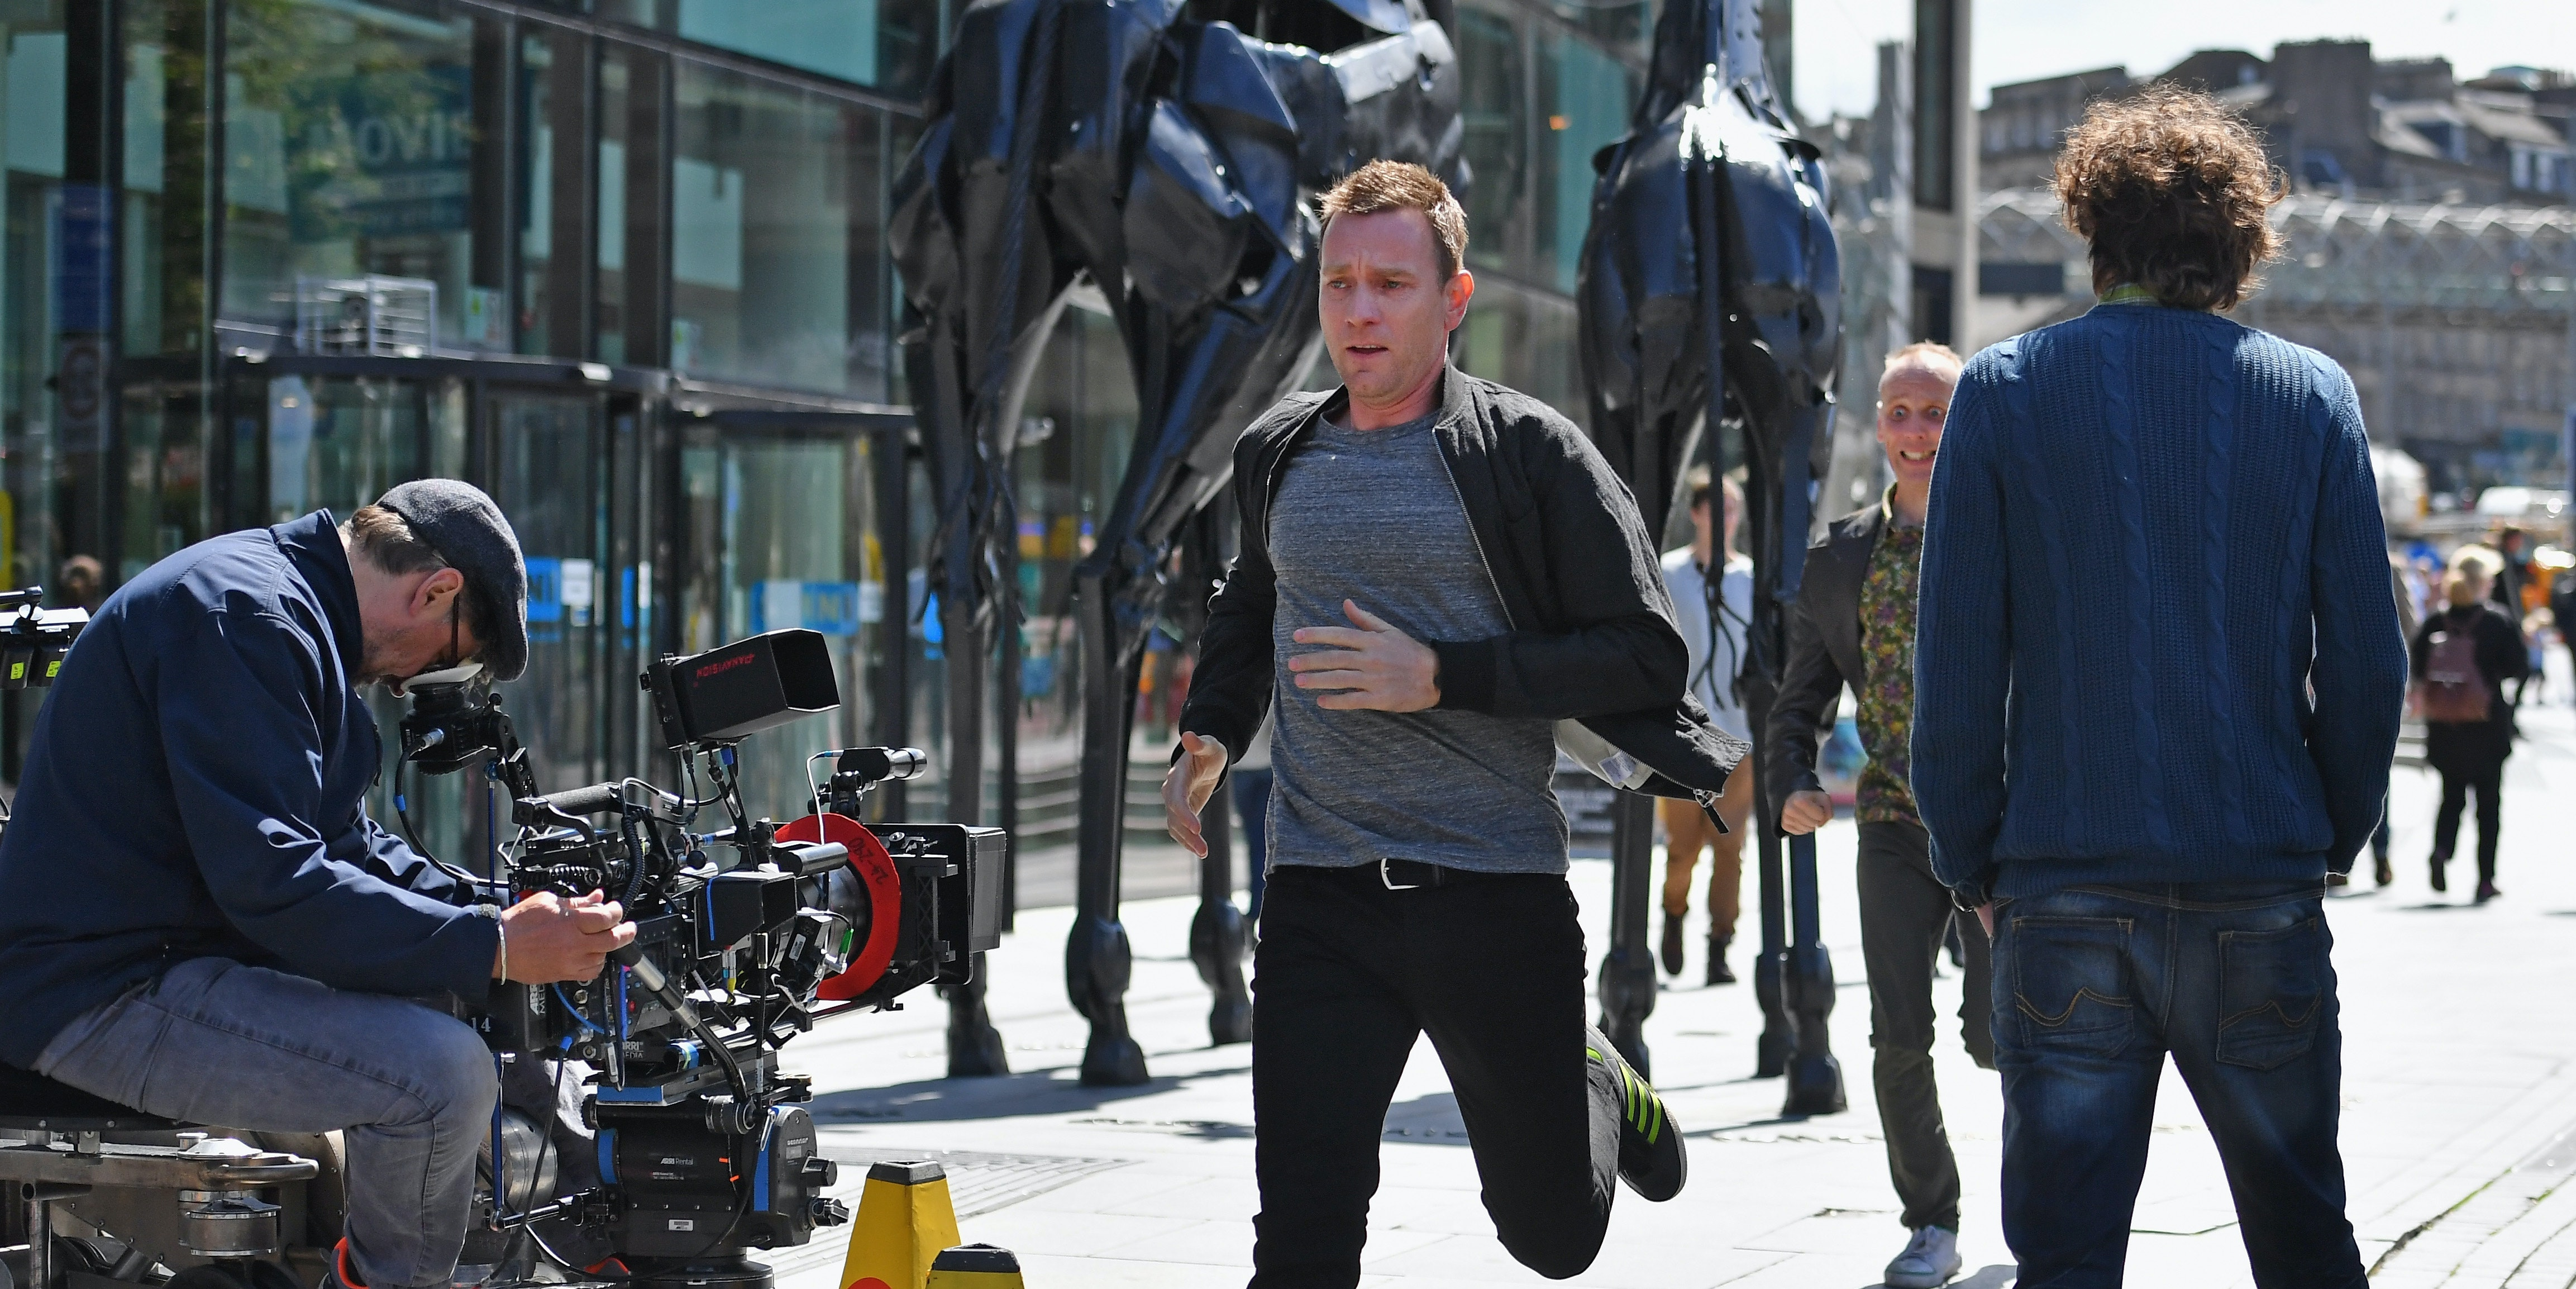 EDINBURGH, SCOTLAND - JULY 13:  Actors Ewan McGregor and Ewan Bremner runs on the set of the Trainspotting film sequel on Princess Street on July 13, 2016 in Edinburgh, Scotland. The long awaited Trainspotting 2 is being filmed in Edinburgh and Glasgow, 20 years after the original was released and it will also see the cast from the first film returning including Ewan McGregor, Jonny Lee Miller and Robert Carlyle.  (Photo by Jeff J Mitchell/Getty Images)